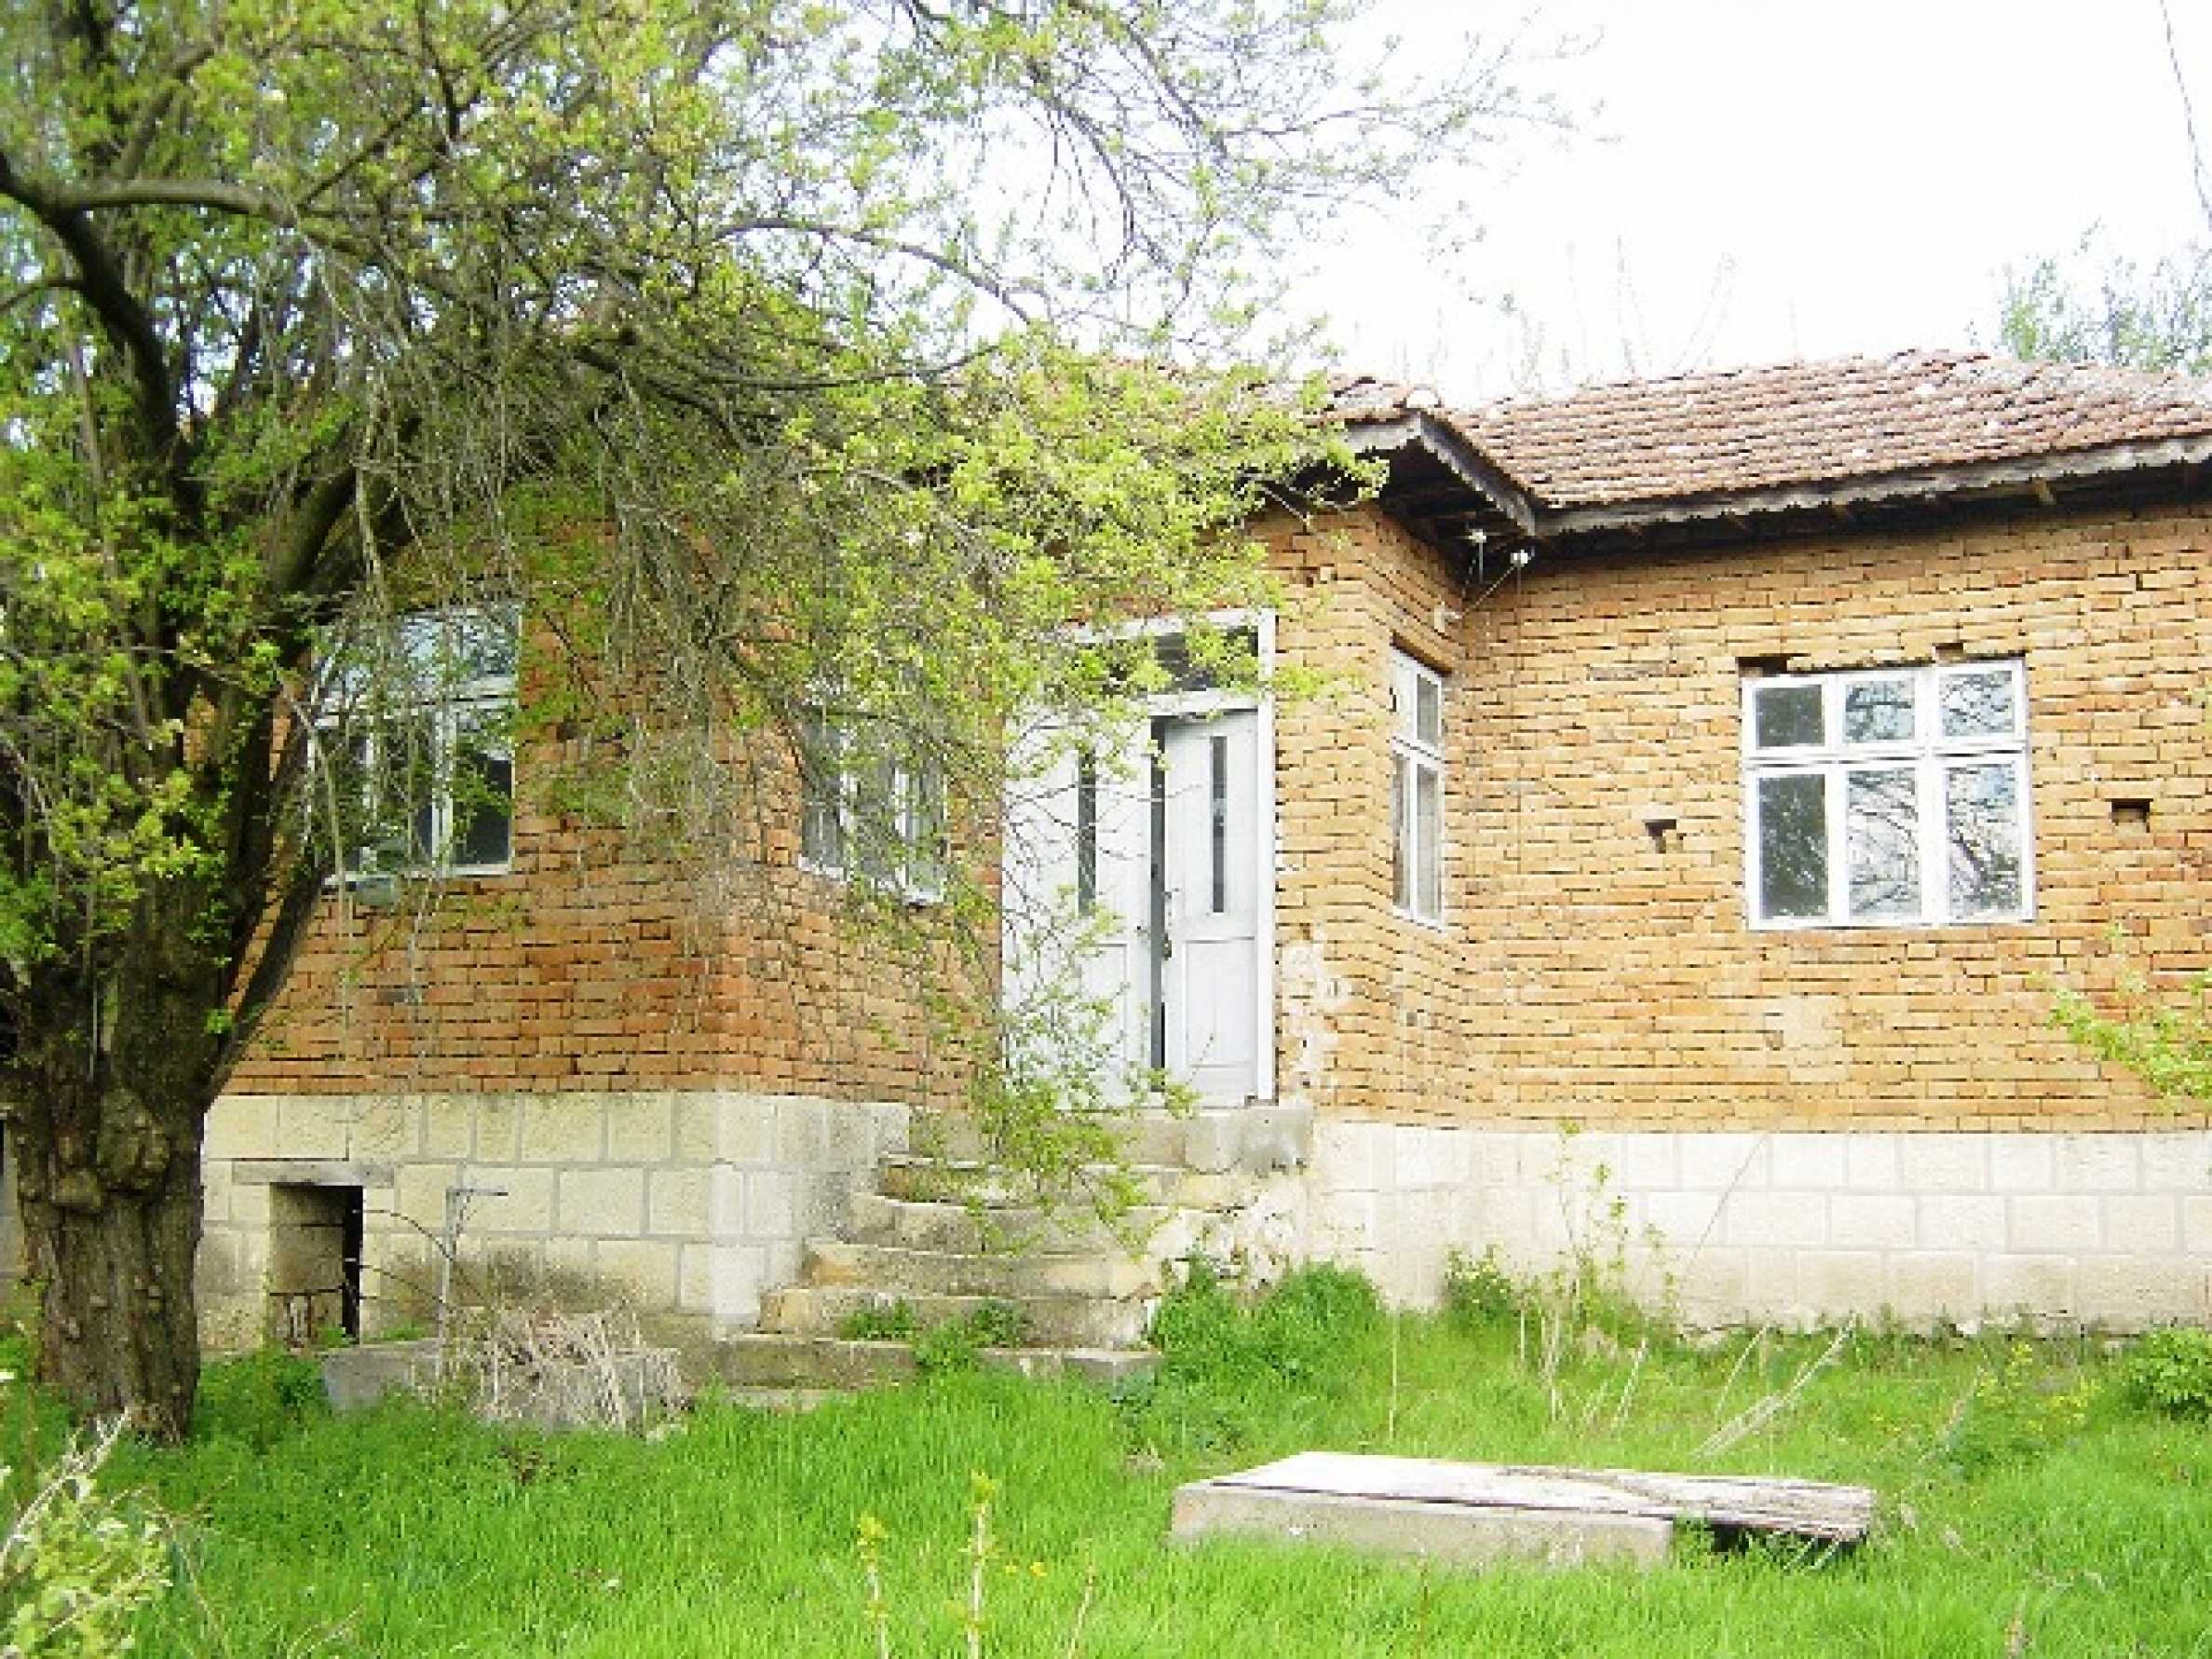 Property in Bulgarian north-east region at a bargain price!